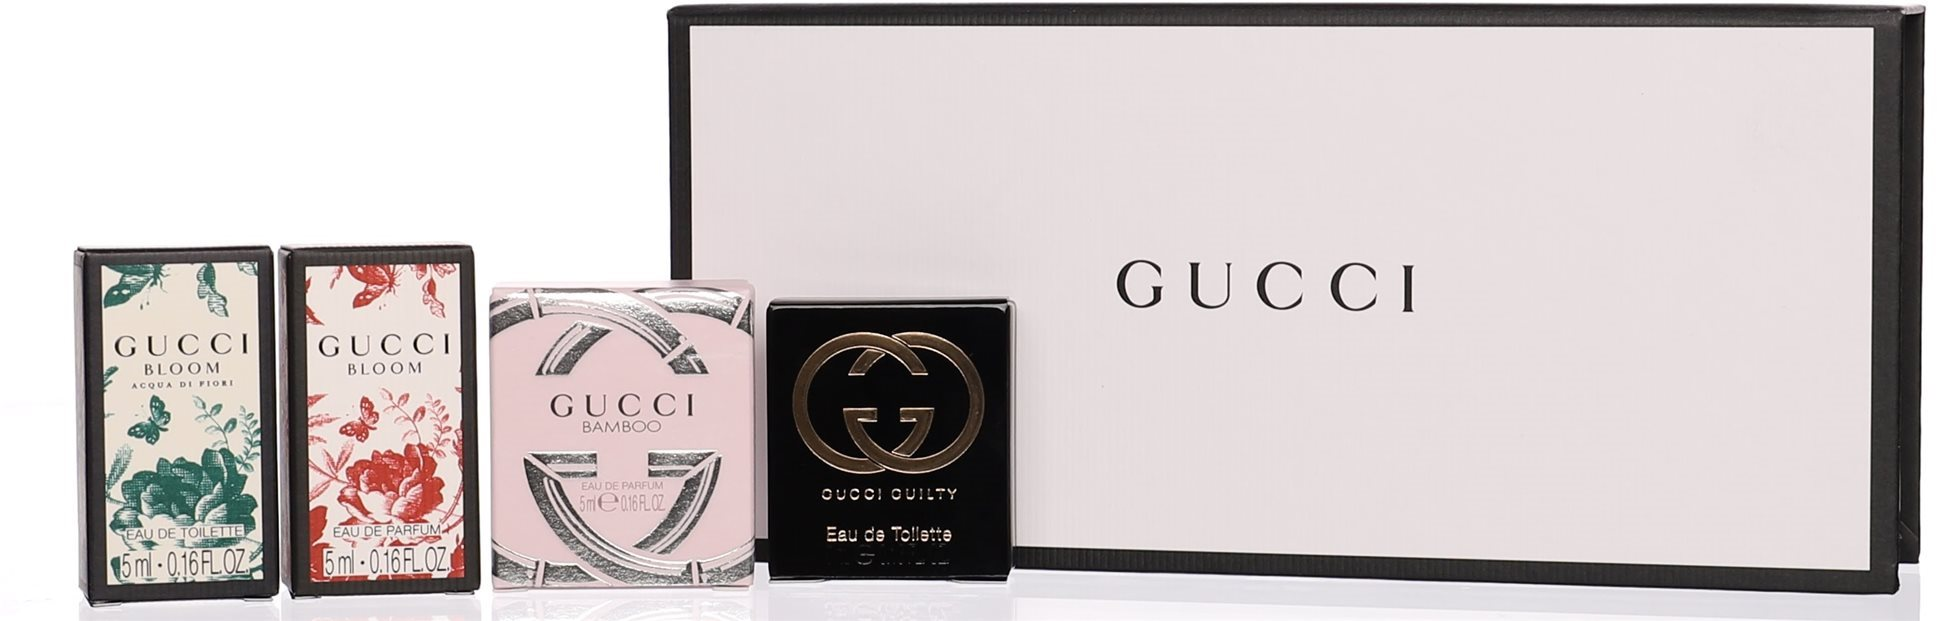 GUCCI Mini Set 20 ml